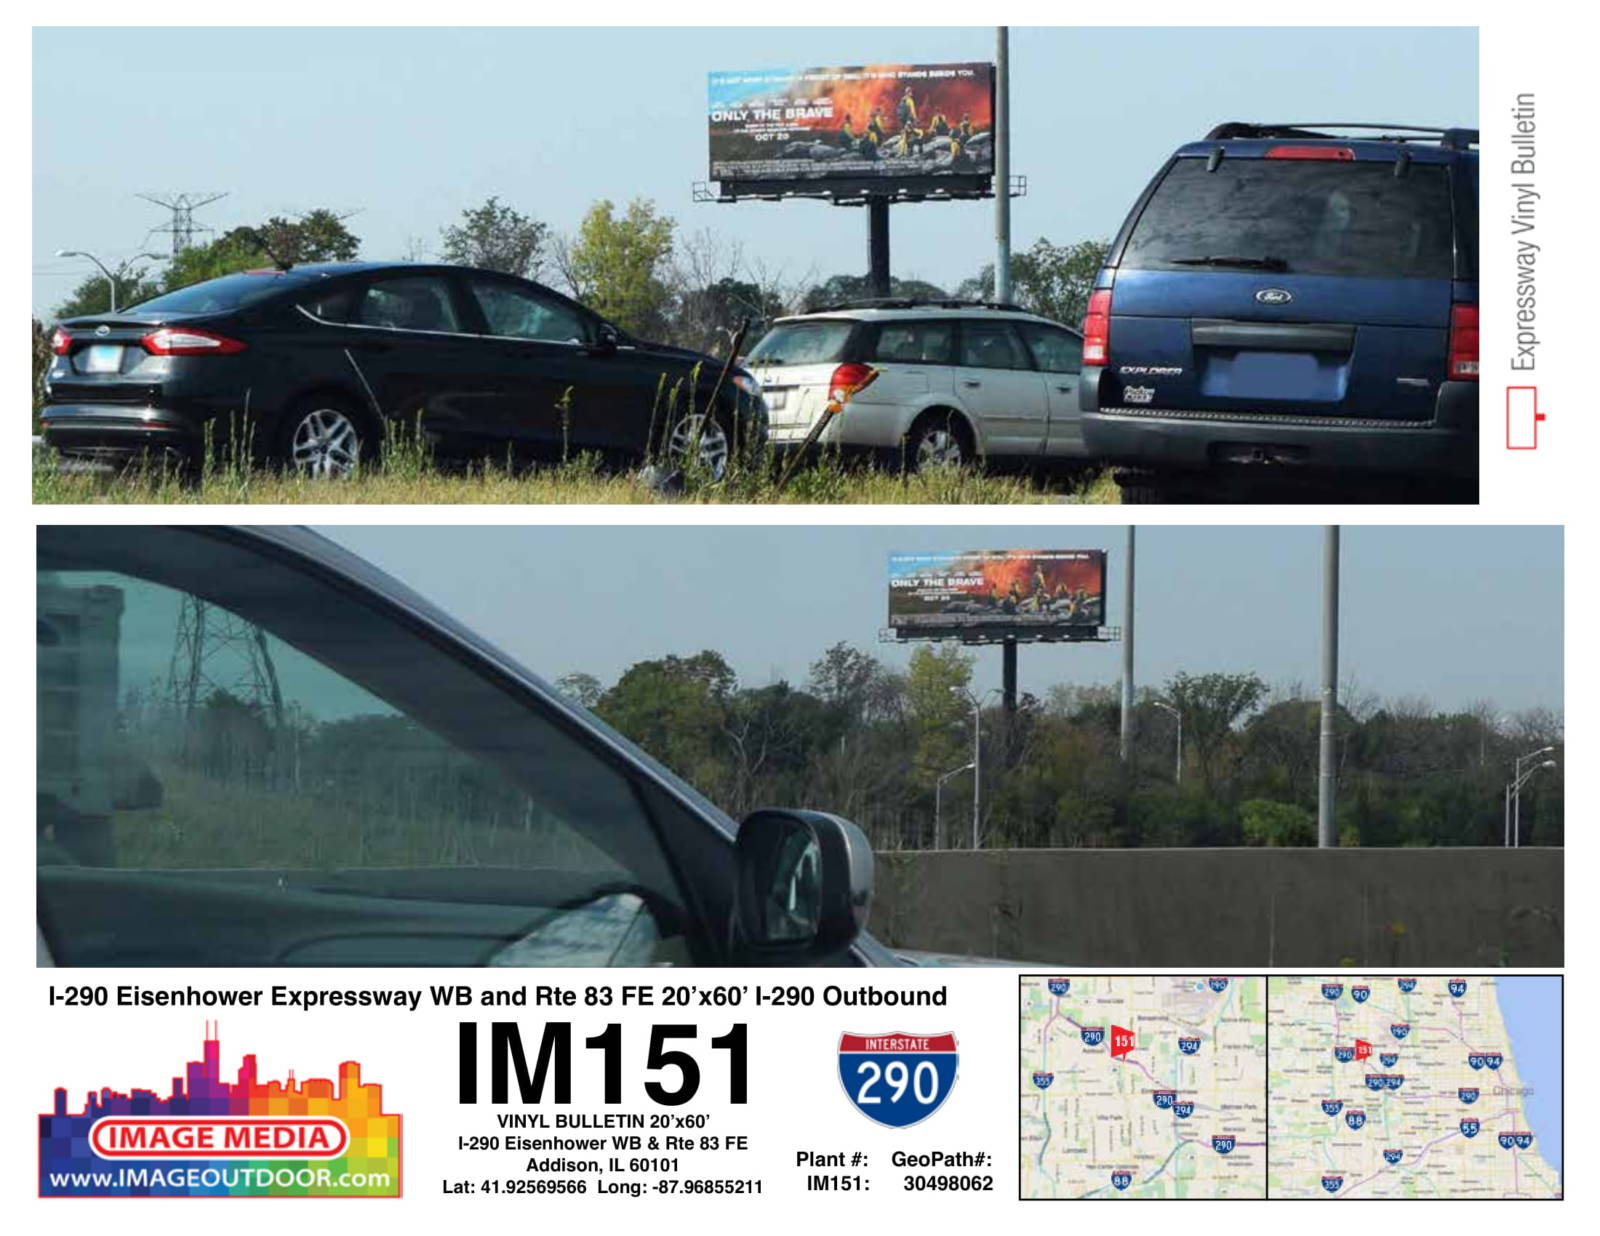 IM151 - billboard on westbound I-290 & Route 83 FTE